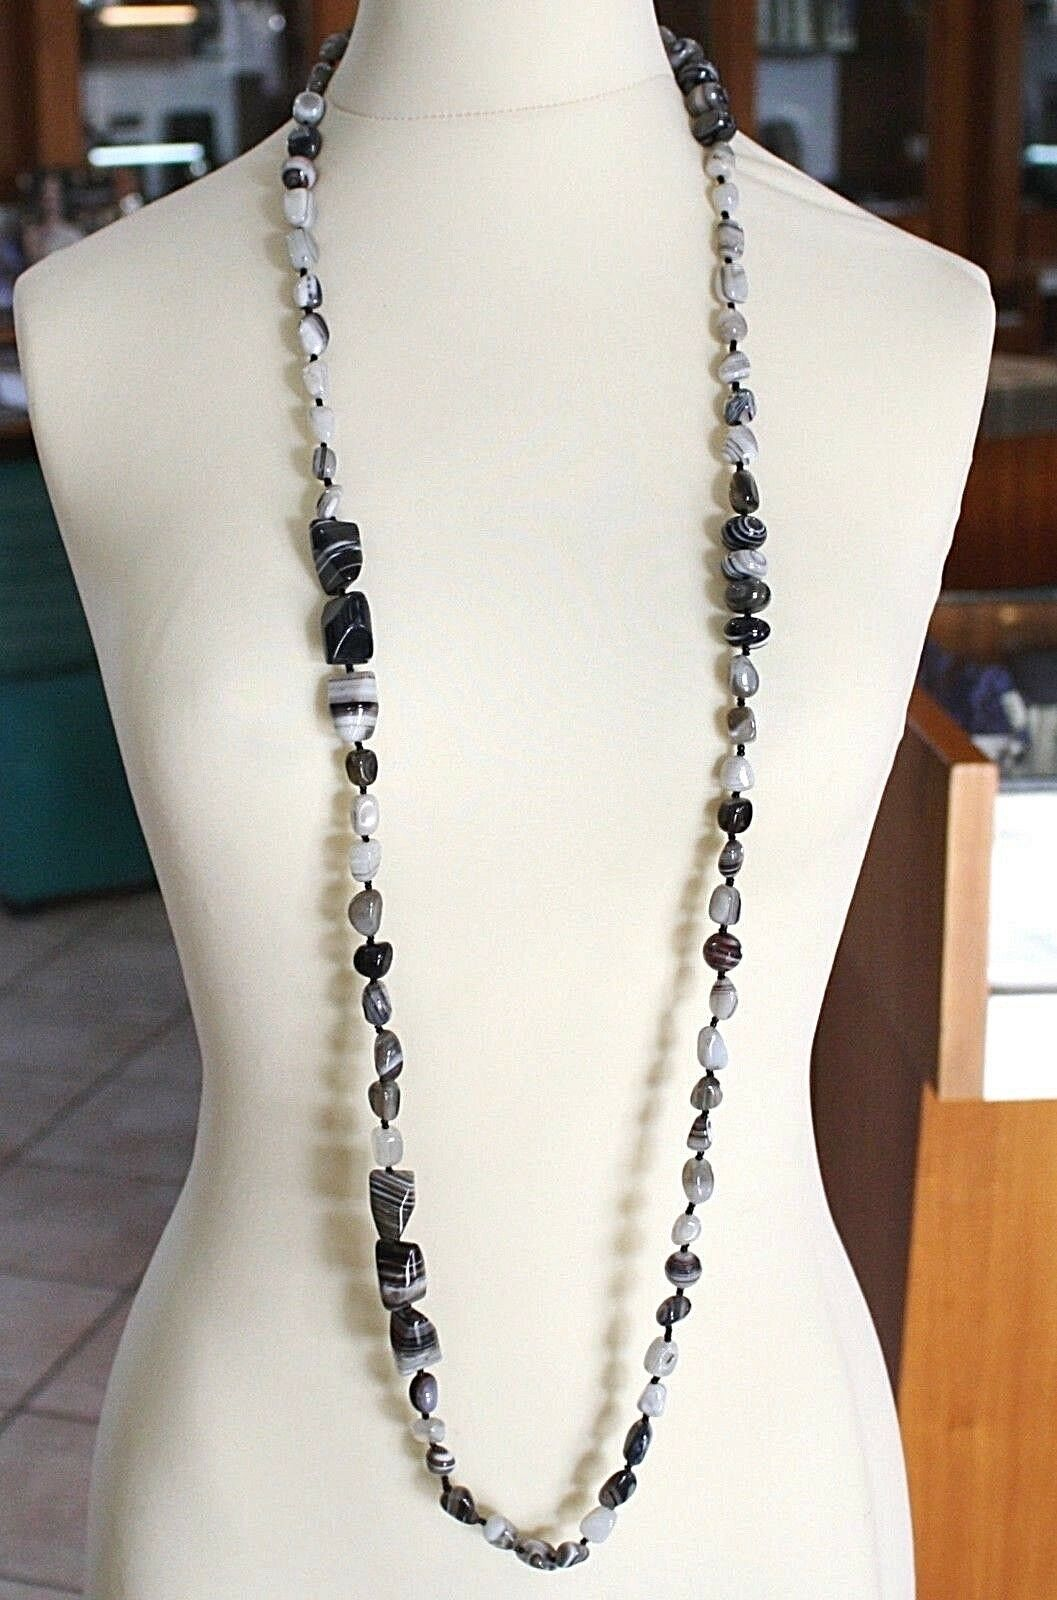 Long Necklace 120 cm, 1.2 Metres, White Agate Black Grey Banded